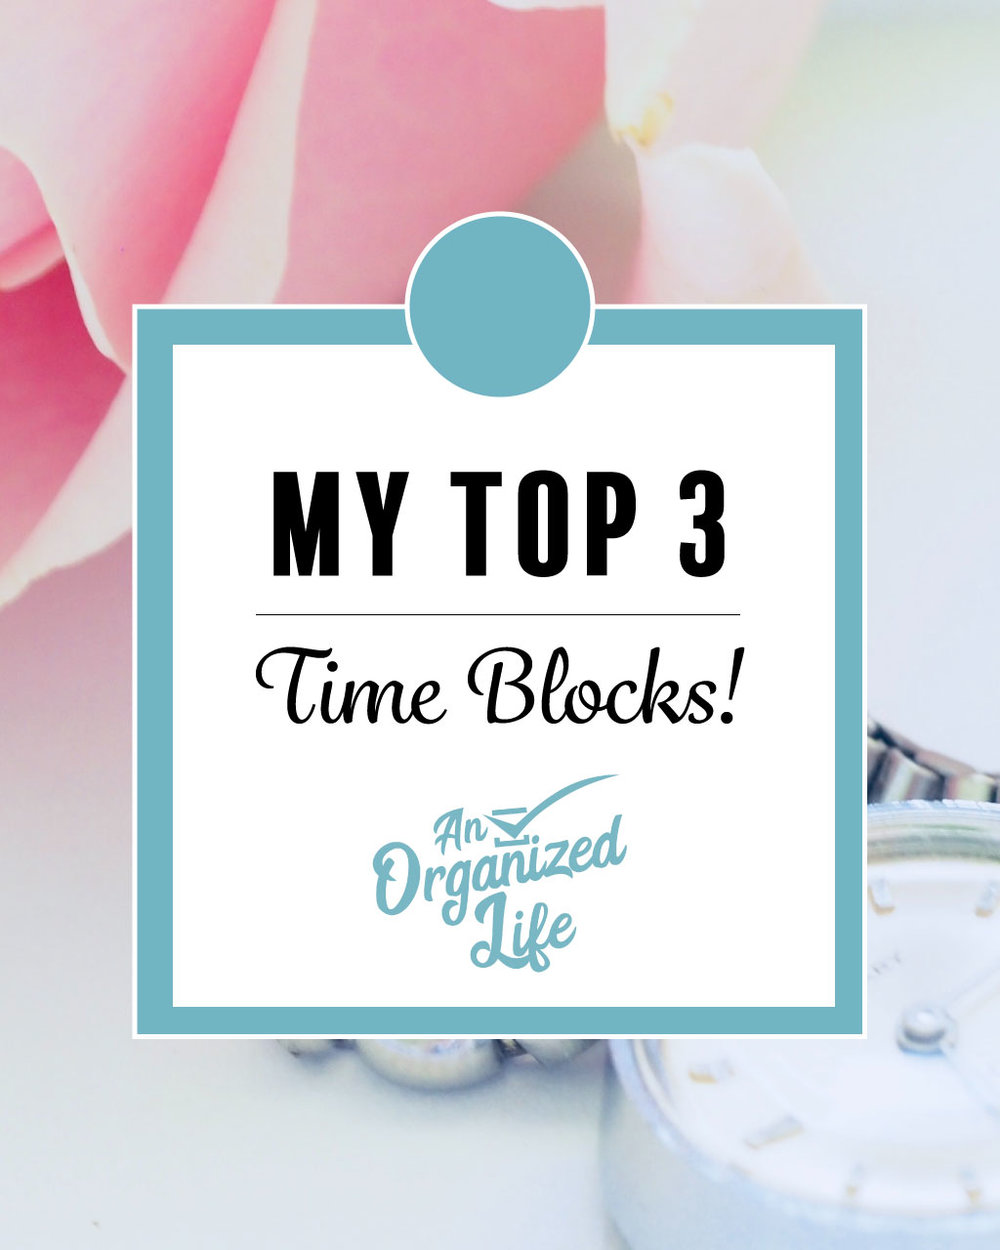 My top 3 time blocks!